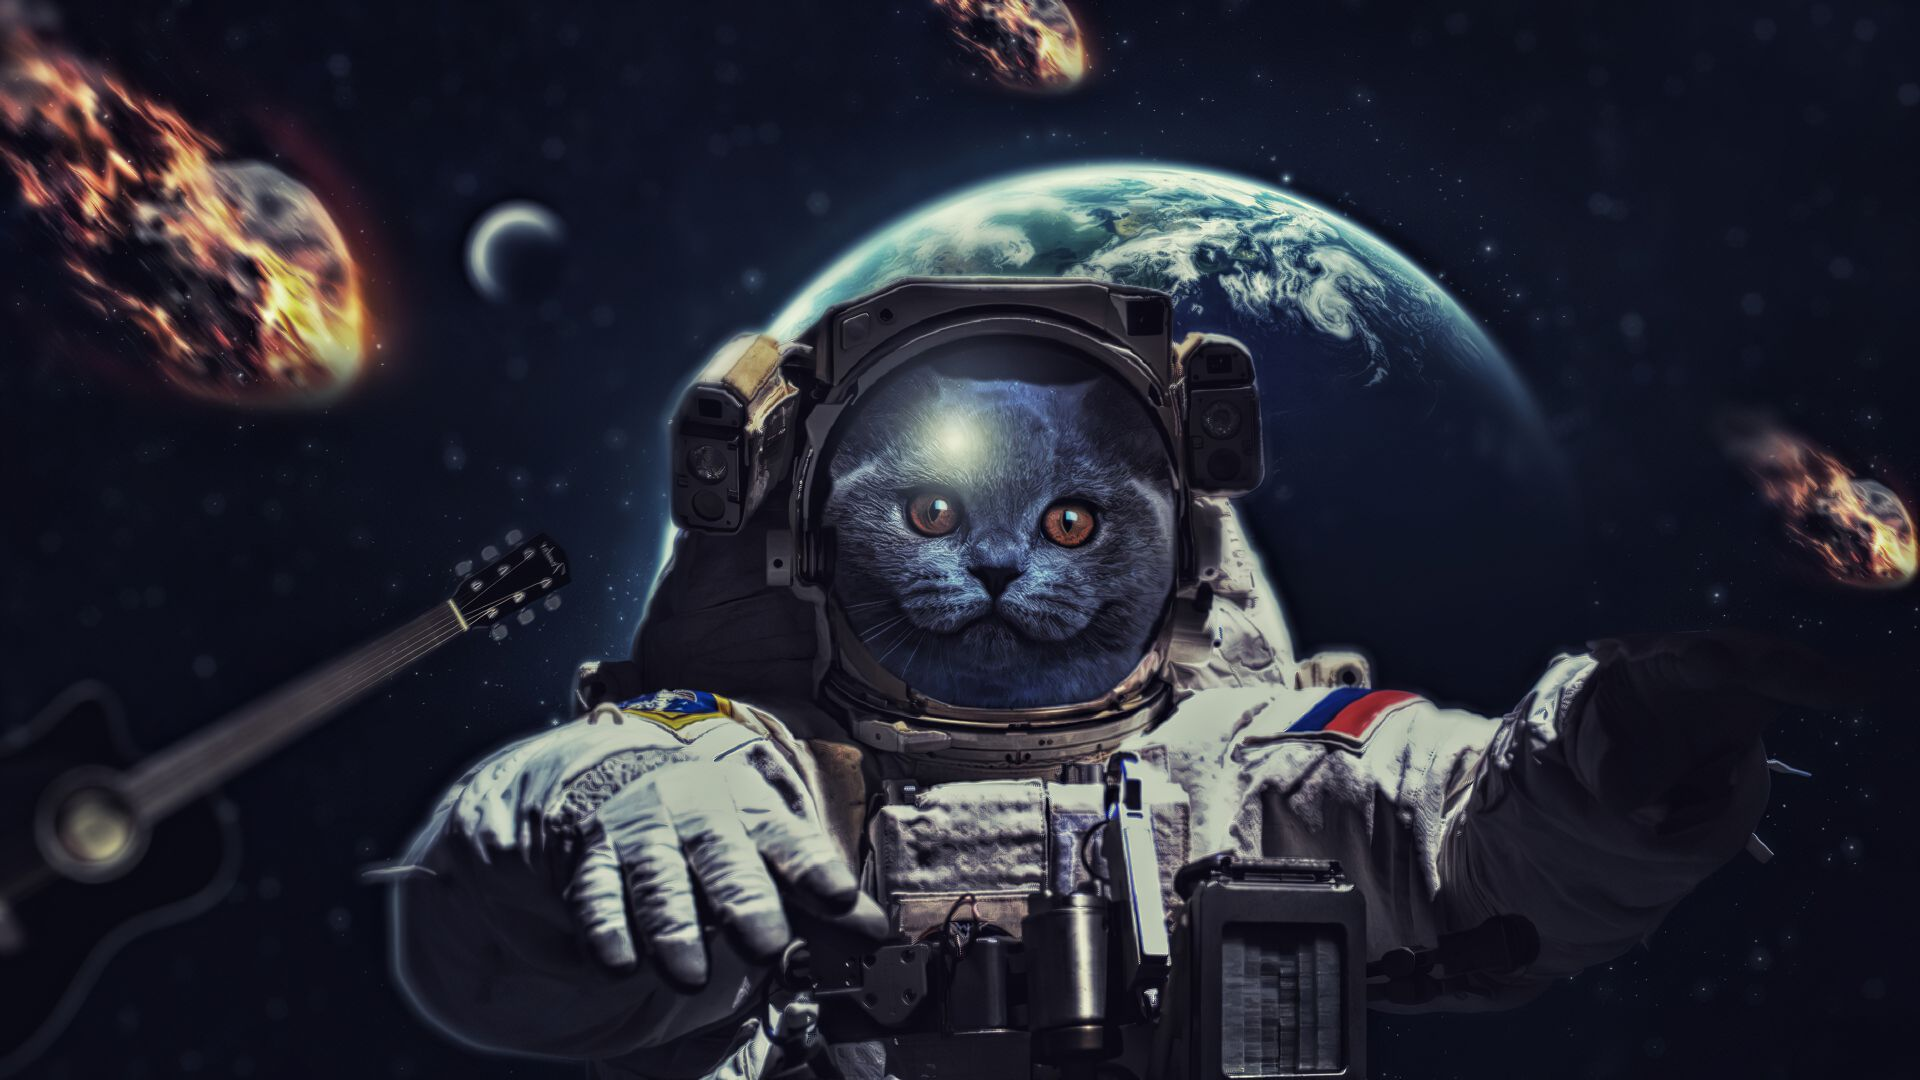 4k space